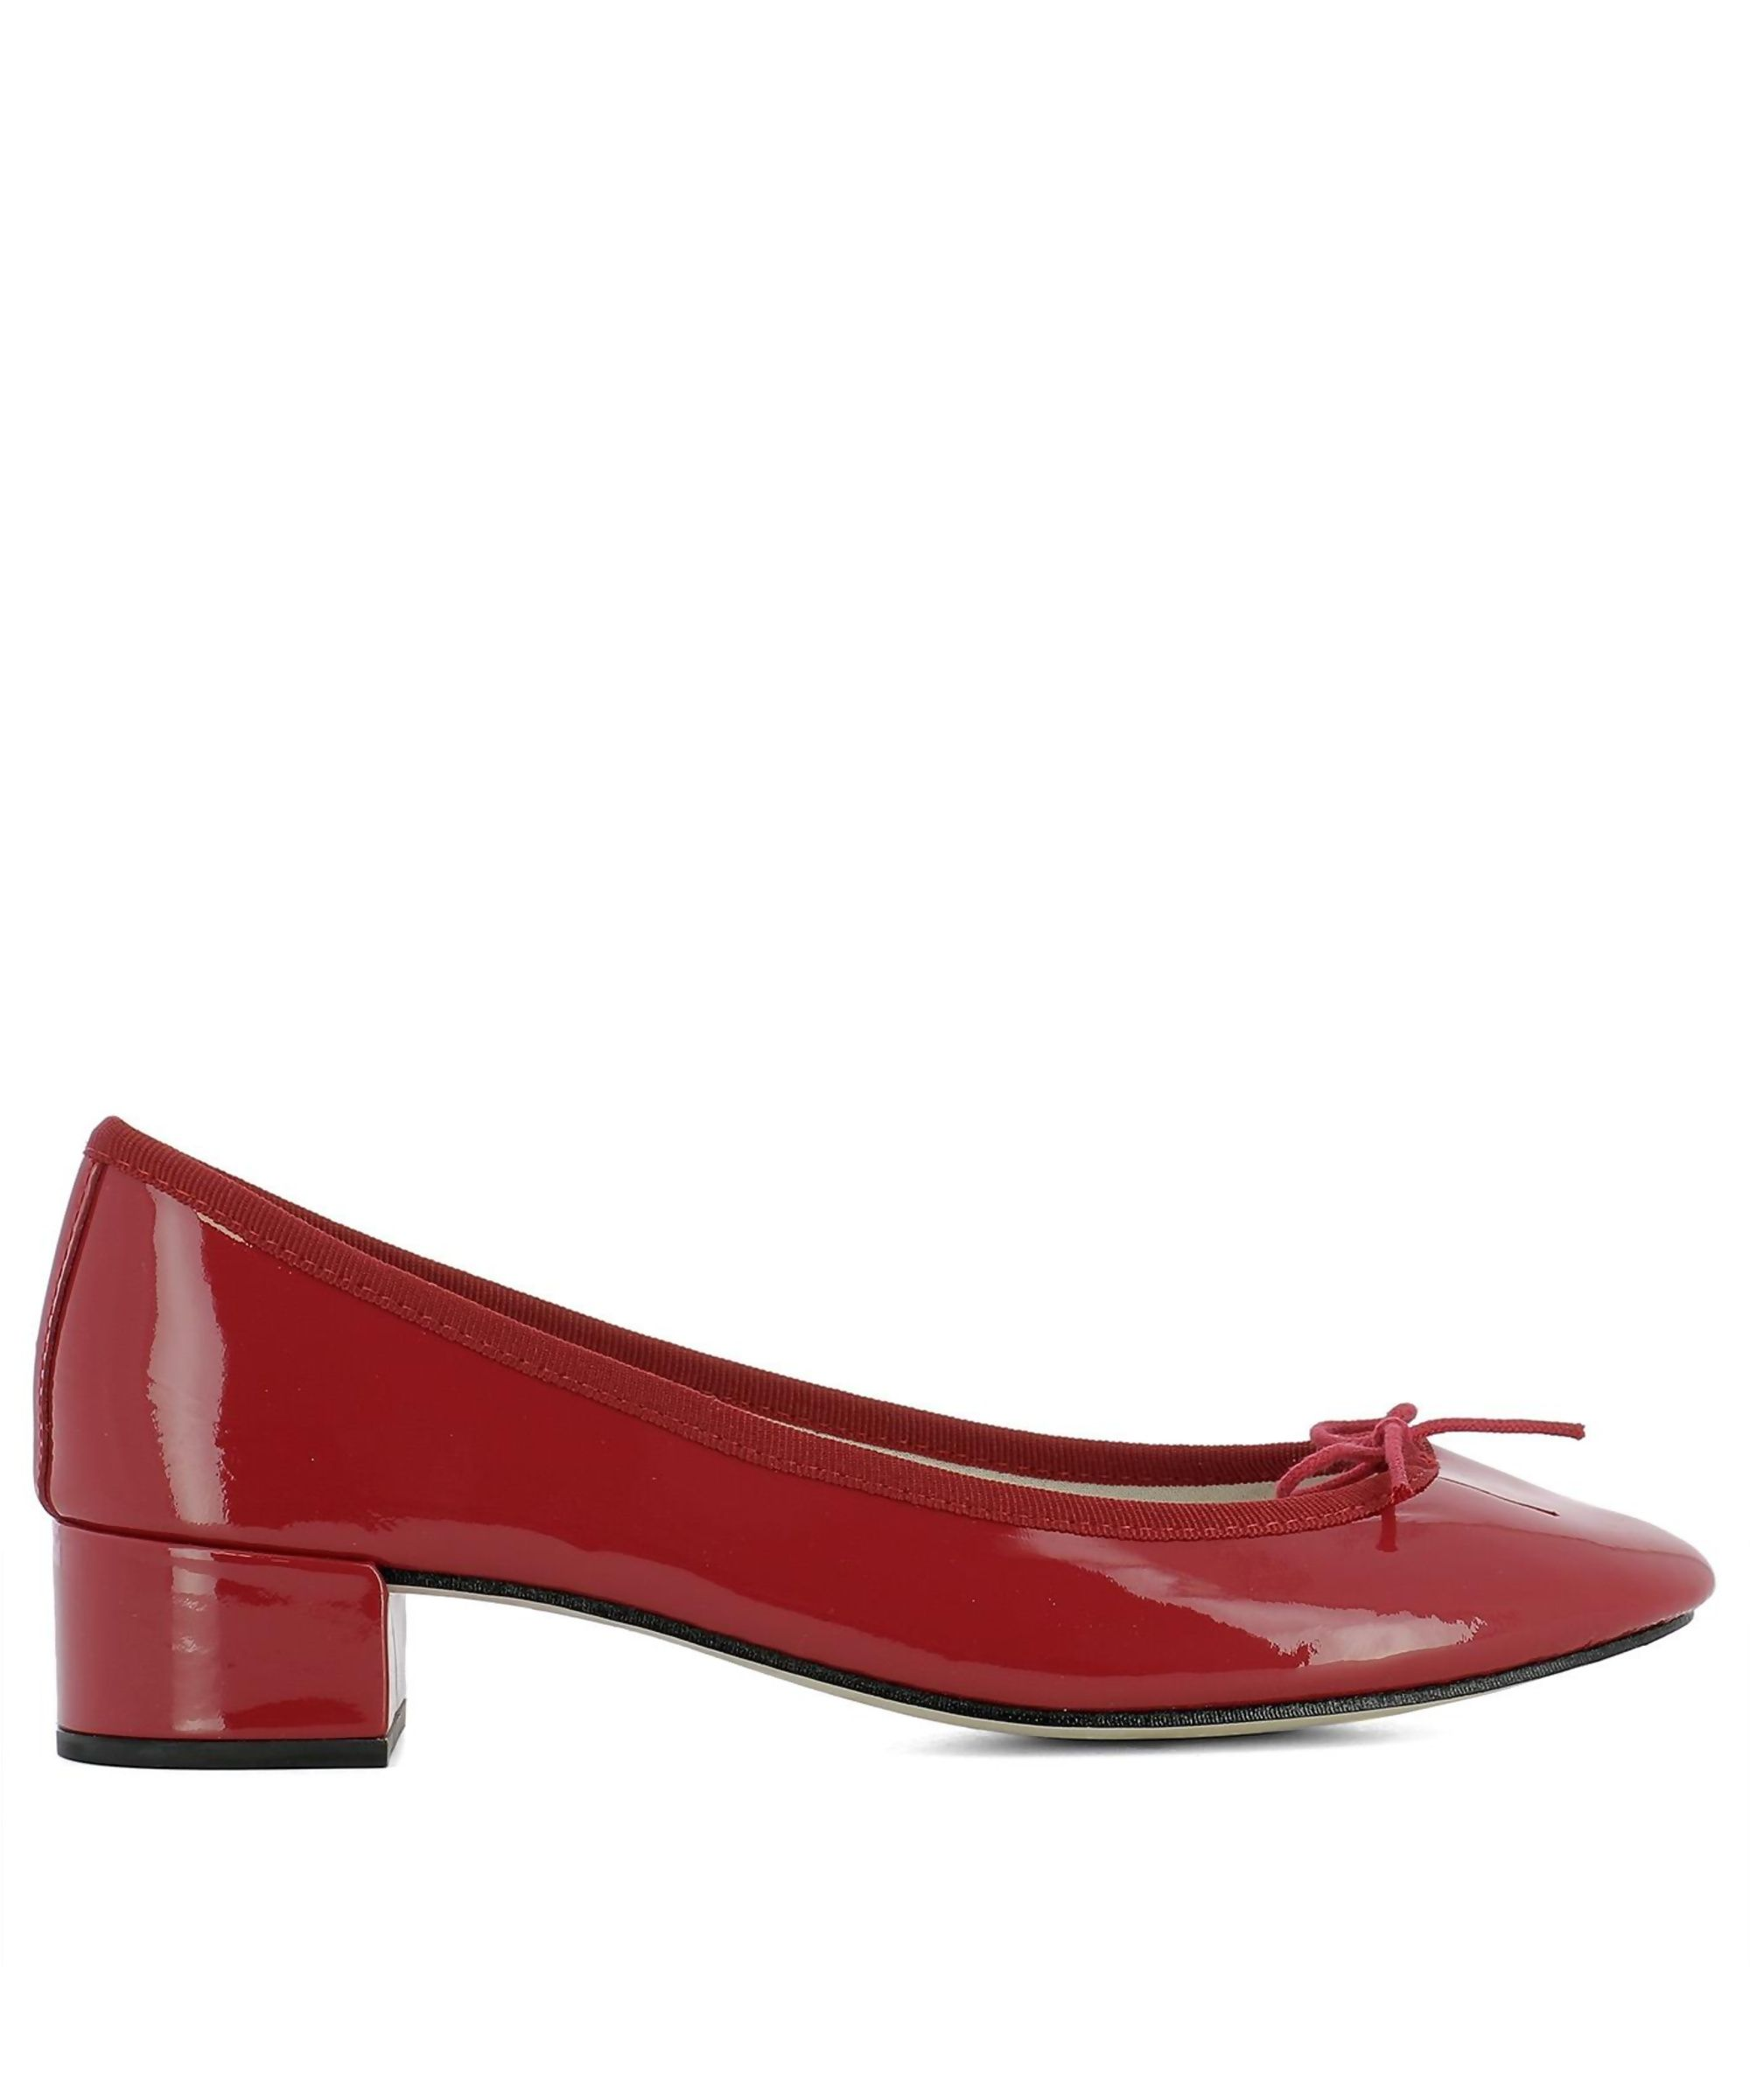 REPETTO   Repetto Women's Red Leather Pumps #Shoes #Pumps & High Heels # REPETTO